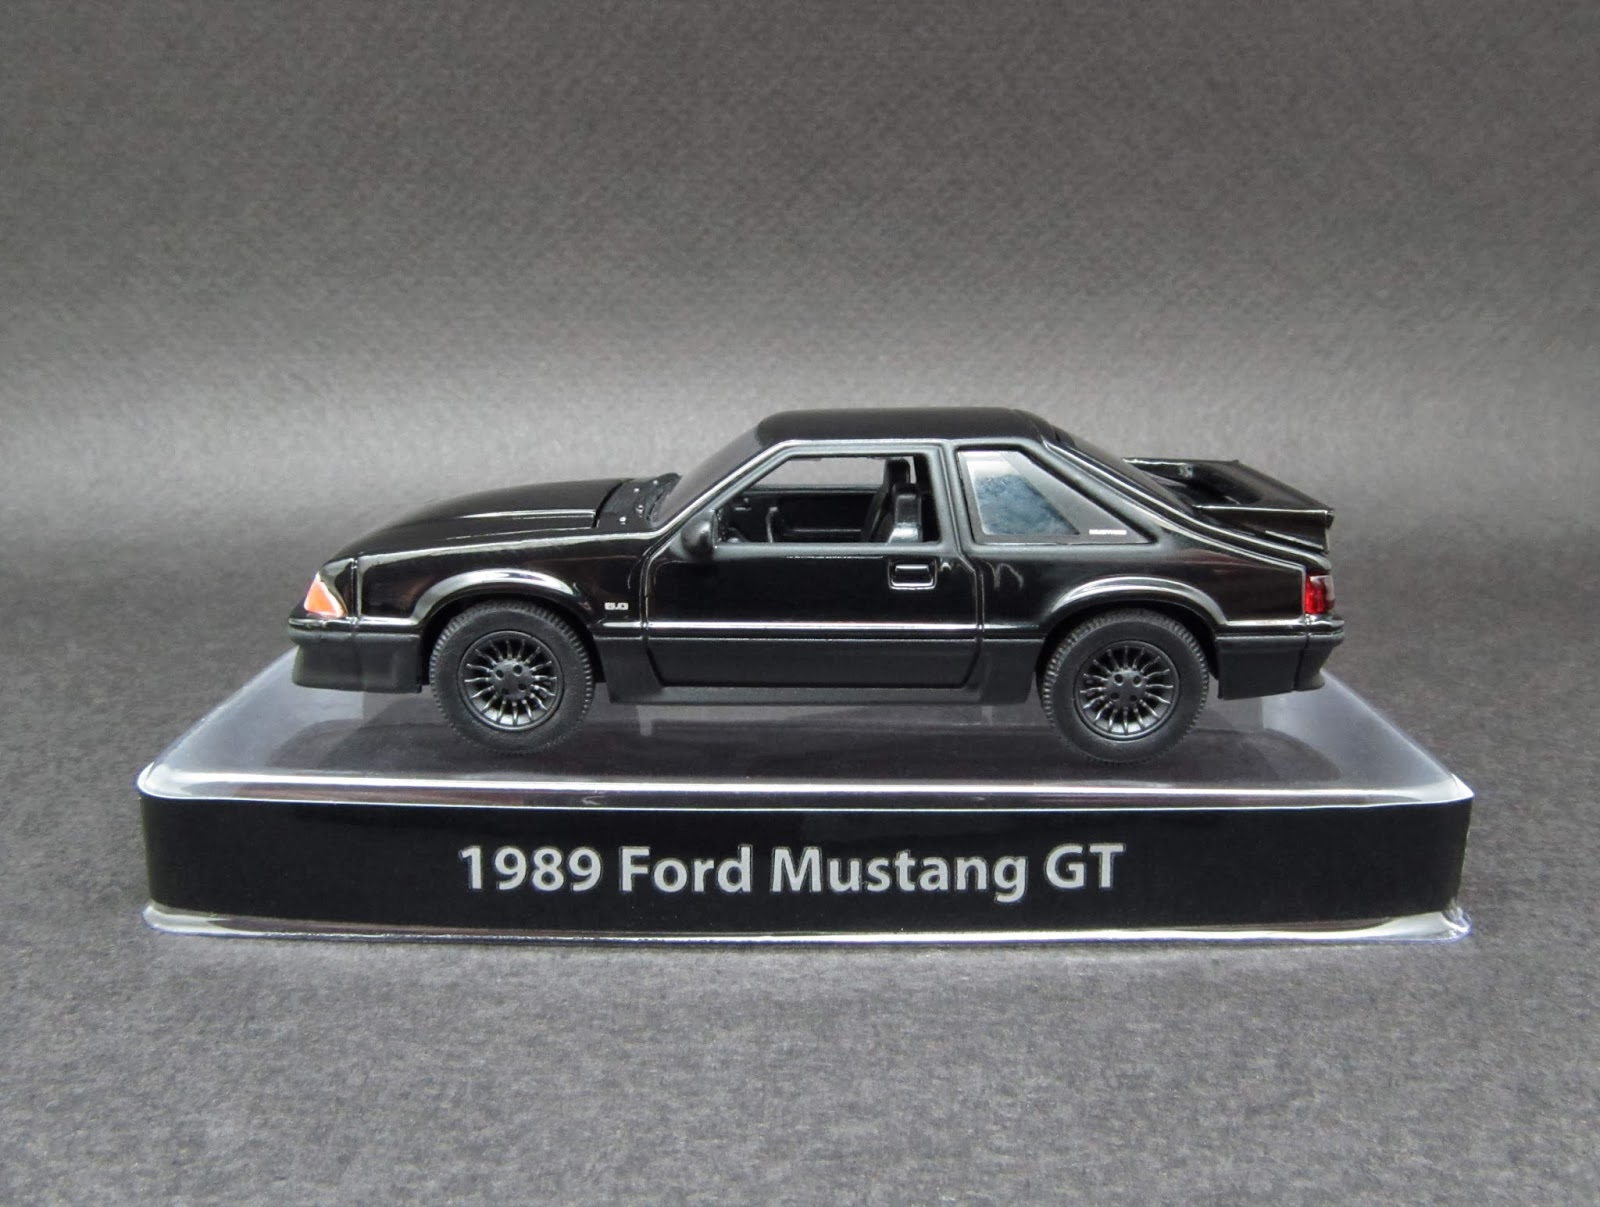 1989 ford mustang gt 164 scale diecast from greenlight black bandit series 6